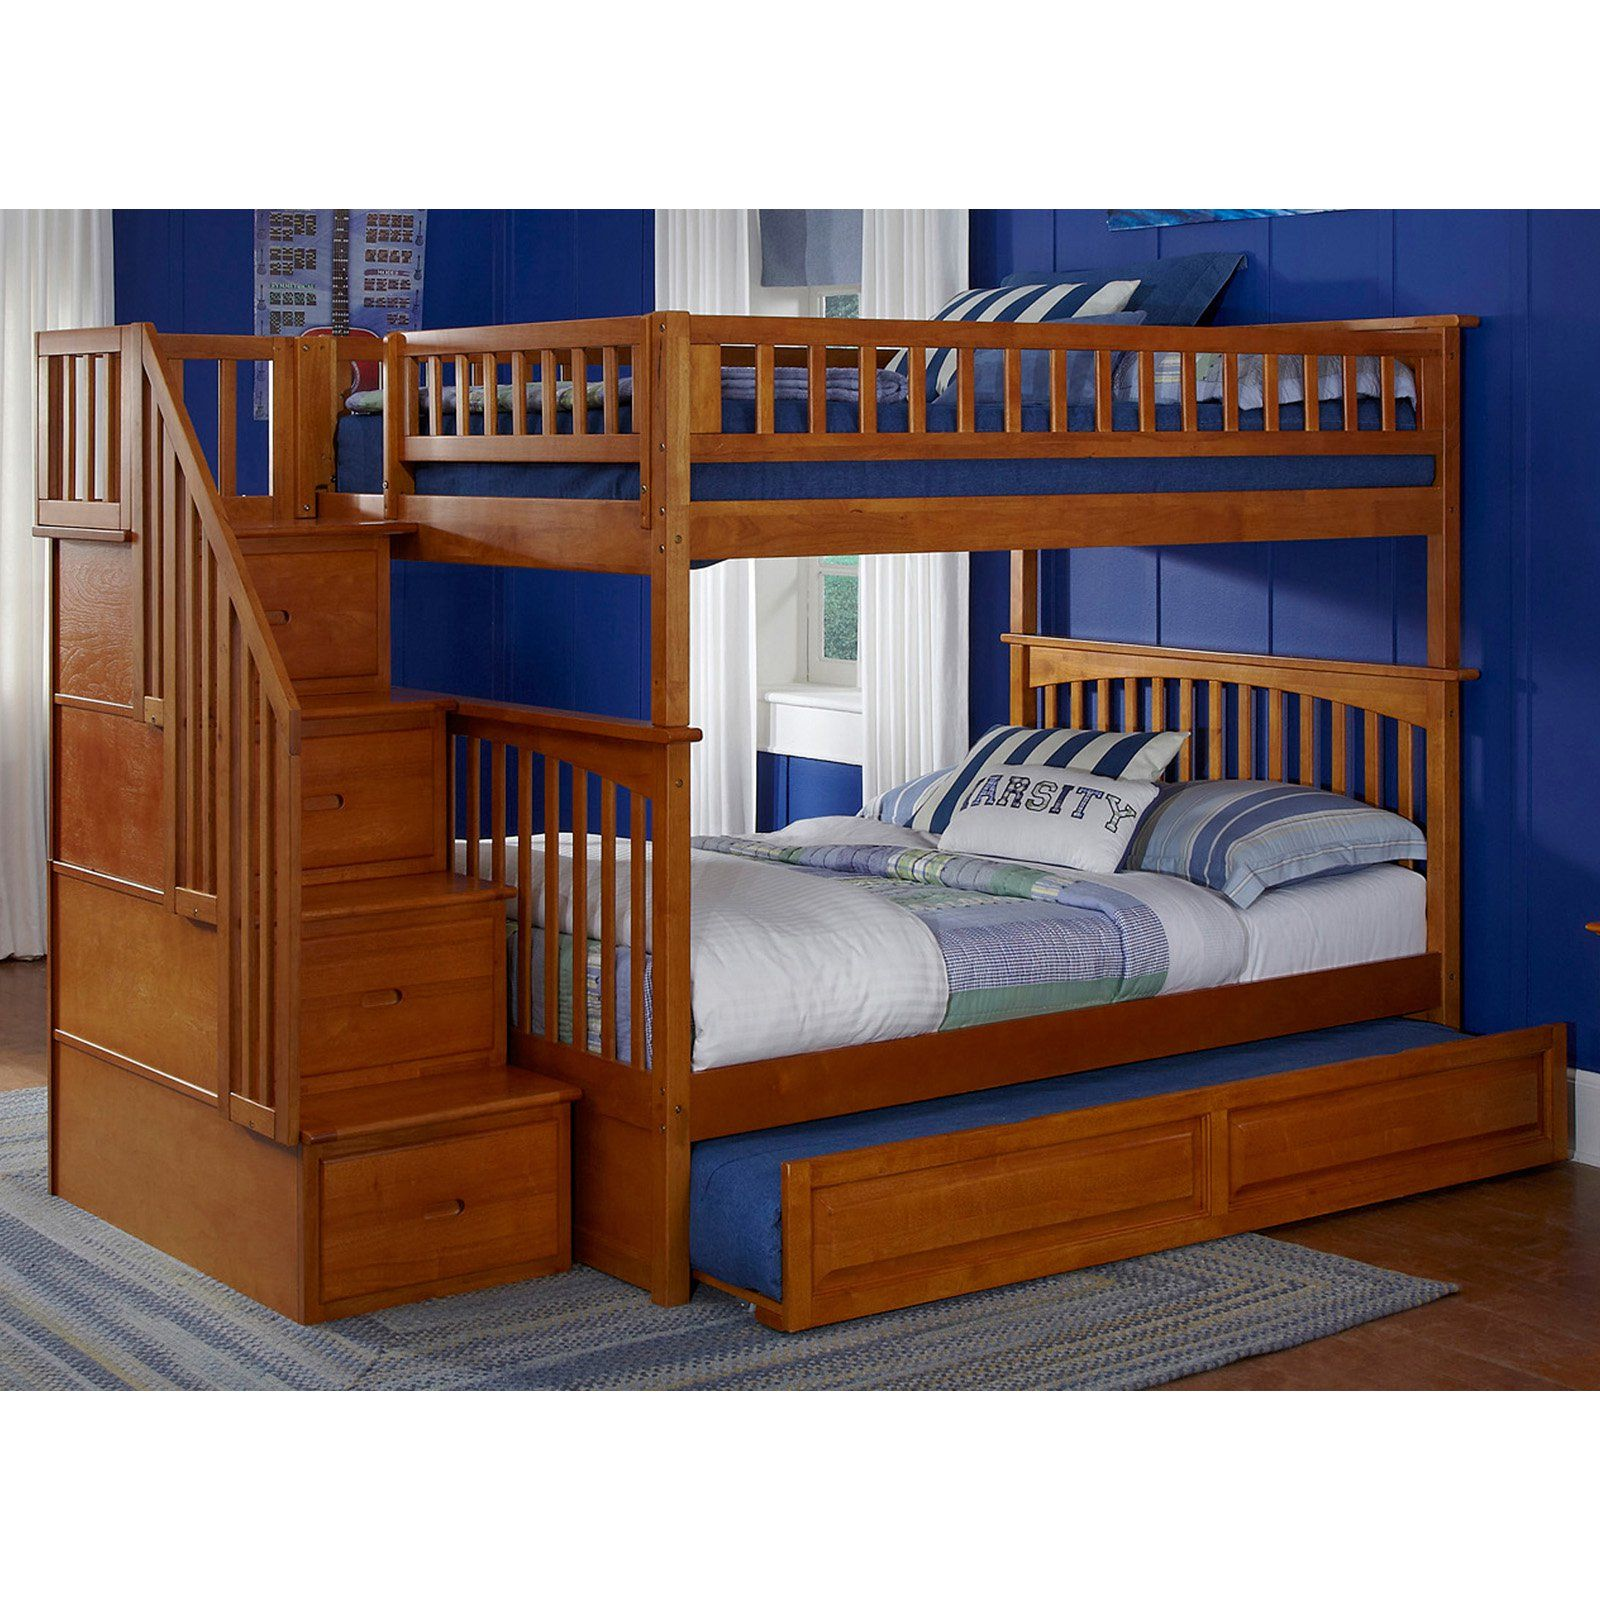 Atlantic Furniture Columbia Staircase Full Over Full Bunk